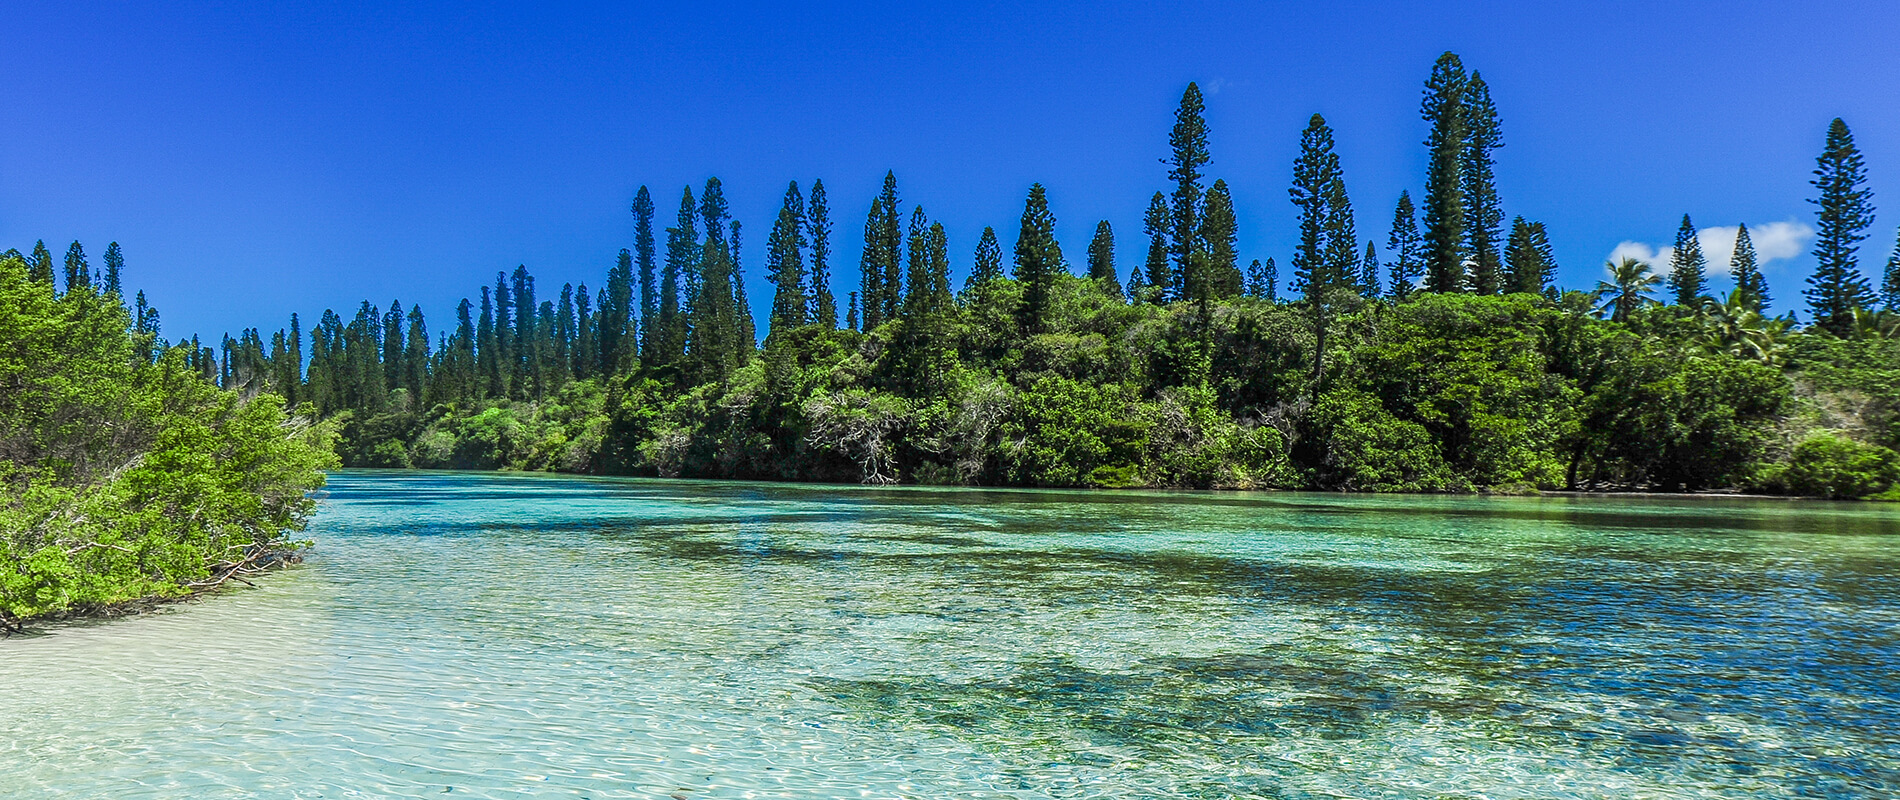 The Isle of Pines, the Precious Pearl of New Caledonia